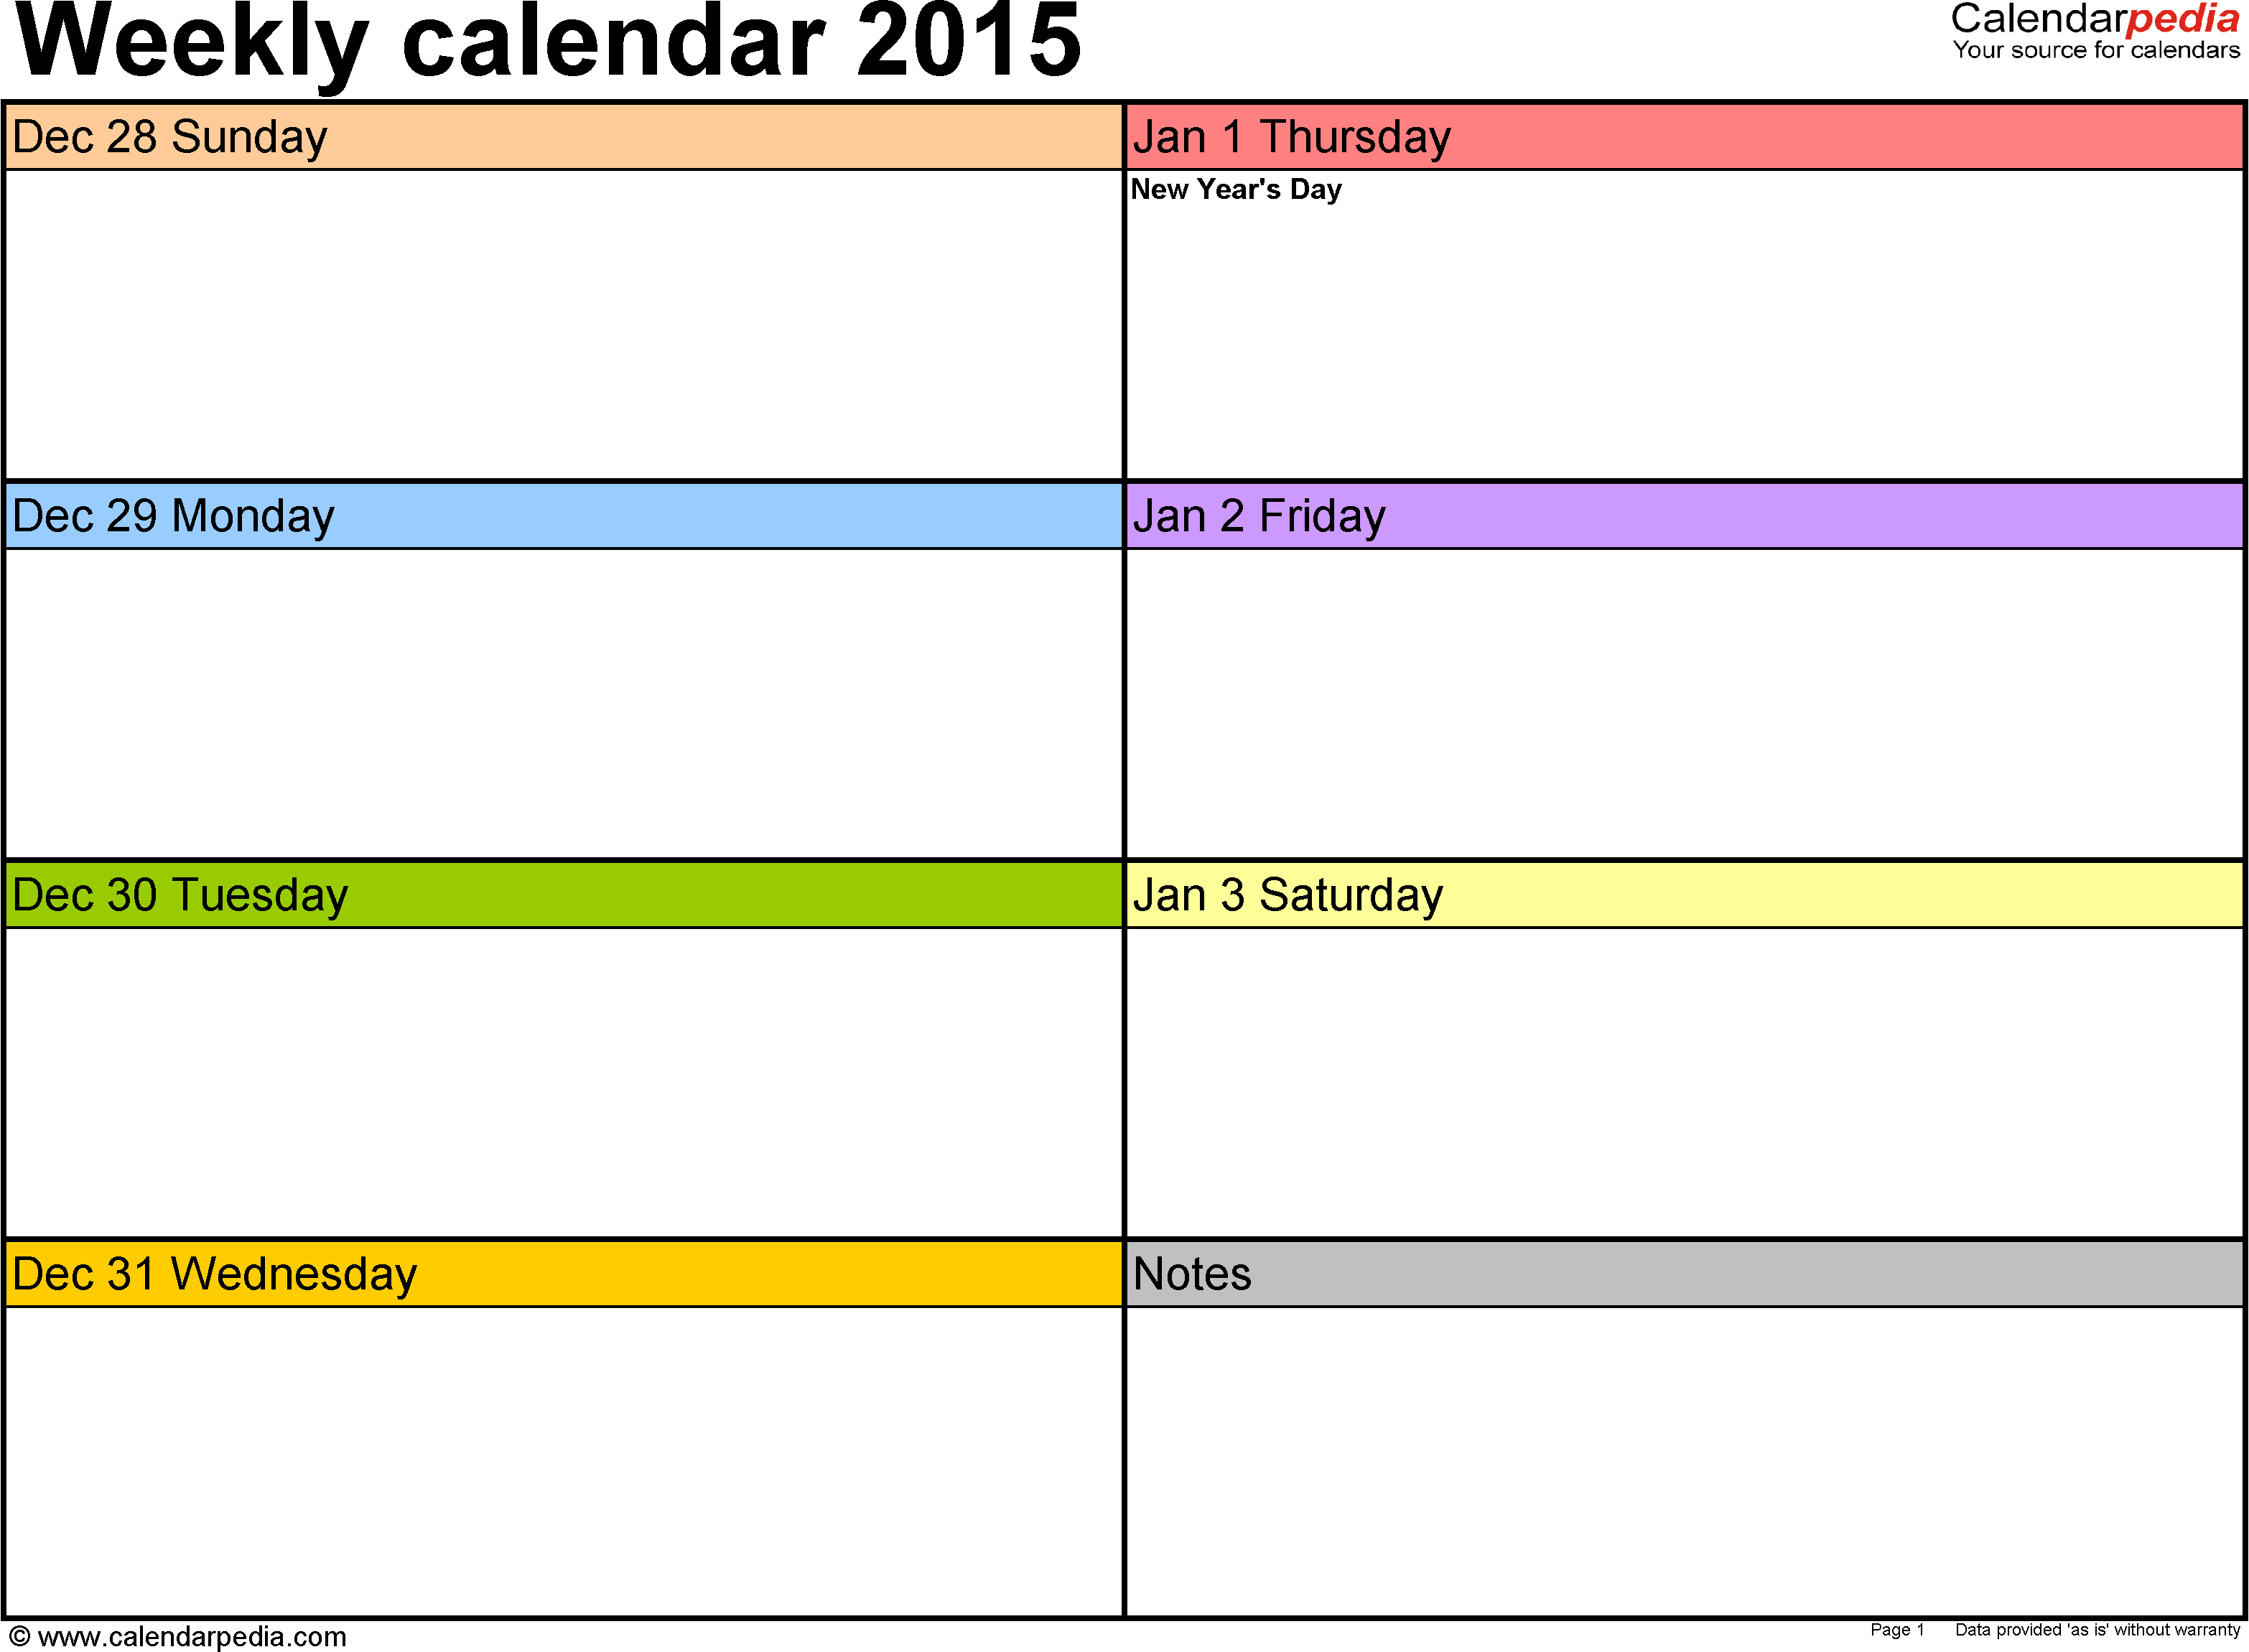 Weekly Calendar 2015 For Pdf - 12 Free Printable Templates for 6 Week Work Schedule Template